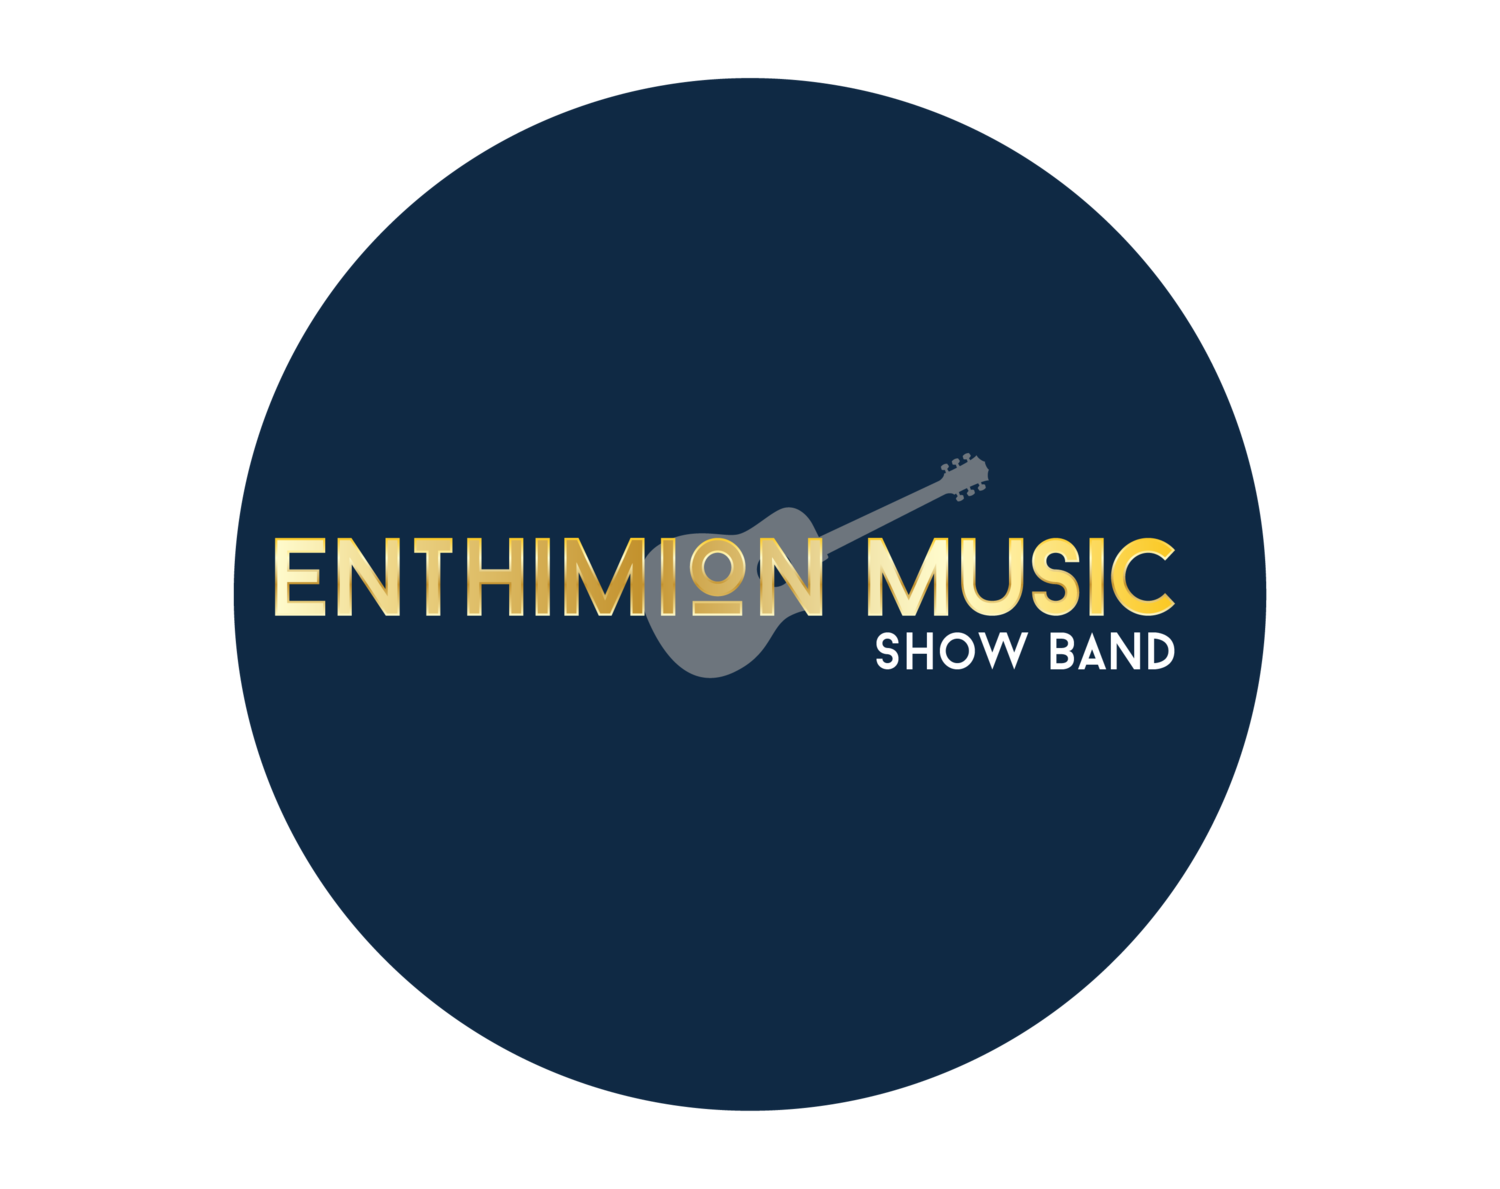 Enthimion Music